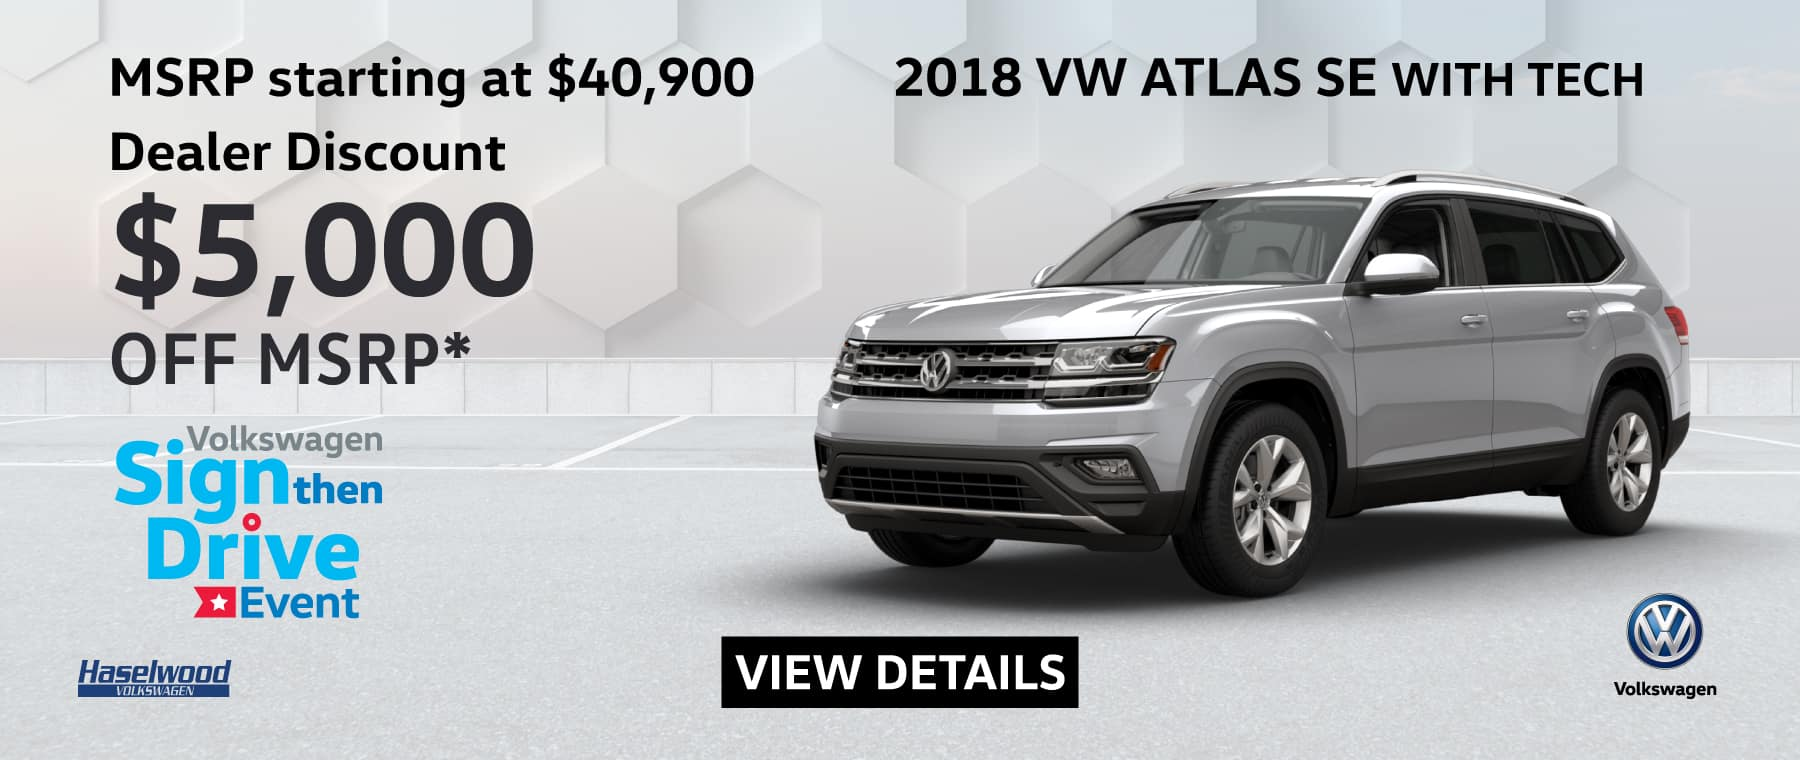 2018 Volkswagen Atlas SE W/Technology $5,000 OFF MSRP*    *Offer valid on 2018 Volkswagen Atlas SE W/Technology. $5,000 off of MSRP. Based on MSRP starting at $40,900. Valid on VIN: 1V2PR2CAXJC580229, 1V2LR2CA9JC581239, 1V2LR2CA1JC583387, 1V2LR2CA5JC588382.Subject to credit approval. Down payment and monthly payment may vary. For highly qualified customers on approved top tier credit through Volkswagen Credit. Excludes taxes, tags, registration and title, insurance and dealer charges. A negotiable dealer documentary service fee of up to $150 may be added to the sale price or capitalized cost. See dealer for complete details and restrictions. 6 years/72,000 miles (whichever occurs first). New Vehicle Limited Warranty on MY2018 and newer VW vehicles, excluding e-Golf. See owner's literature or dealer for warranty exclusions and limitations. Exp. 5/31/2019.